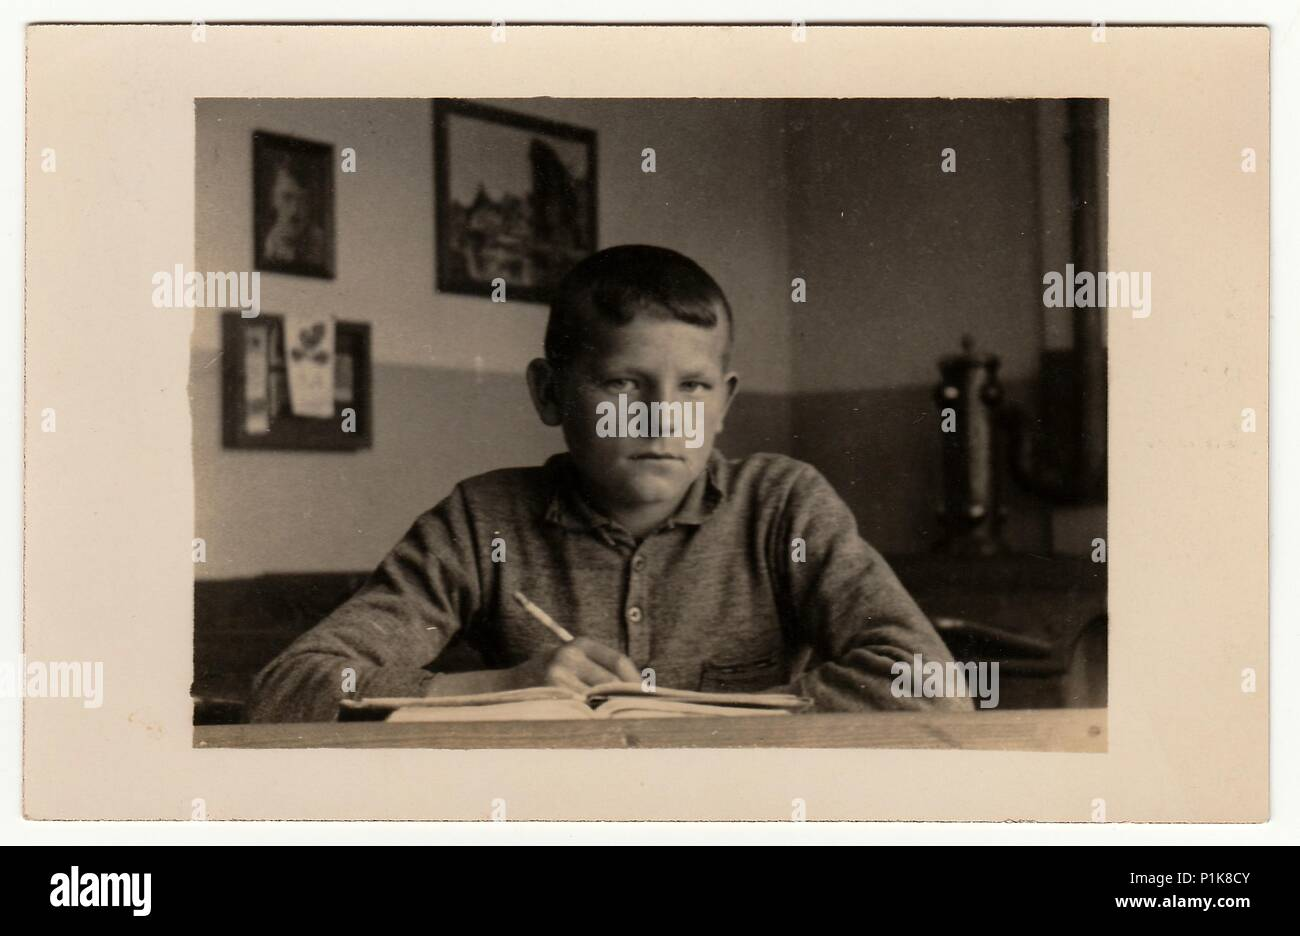 EILENBURG, GERMANY - CIRCA 1940s: Vintage photo shows young boy (pupil, student) sits at the classroom. Black & white antique photography. - Stock Image